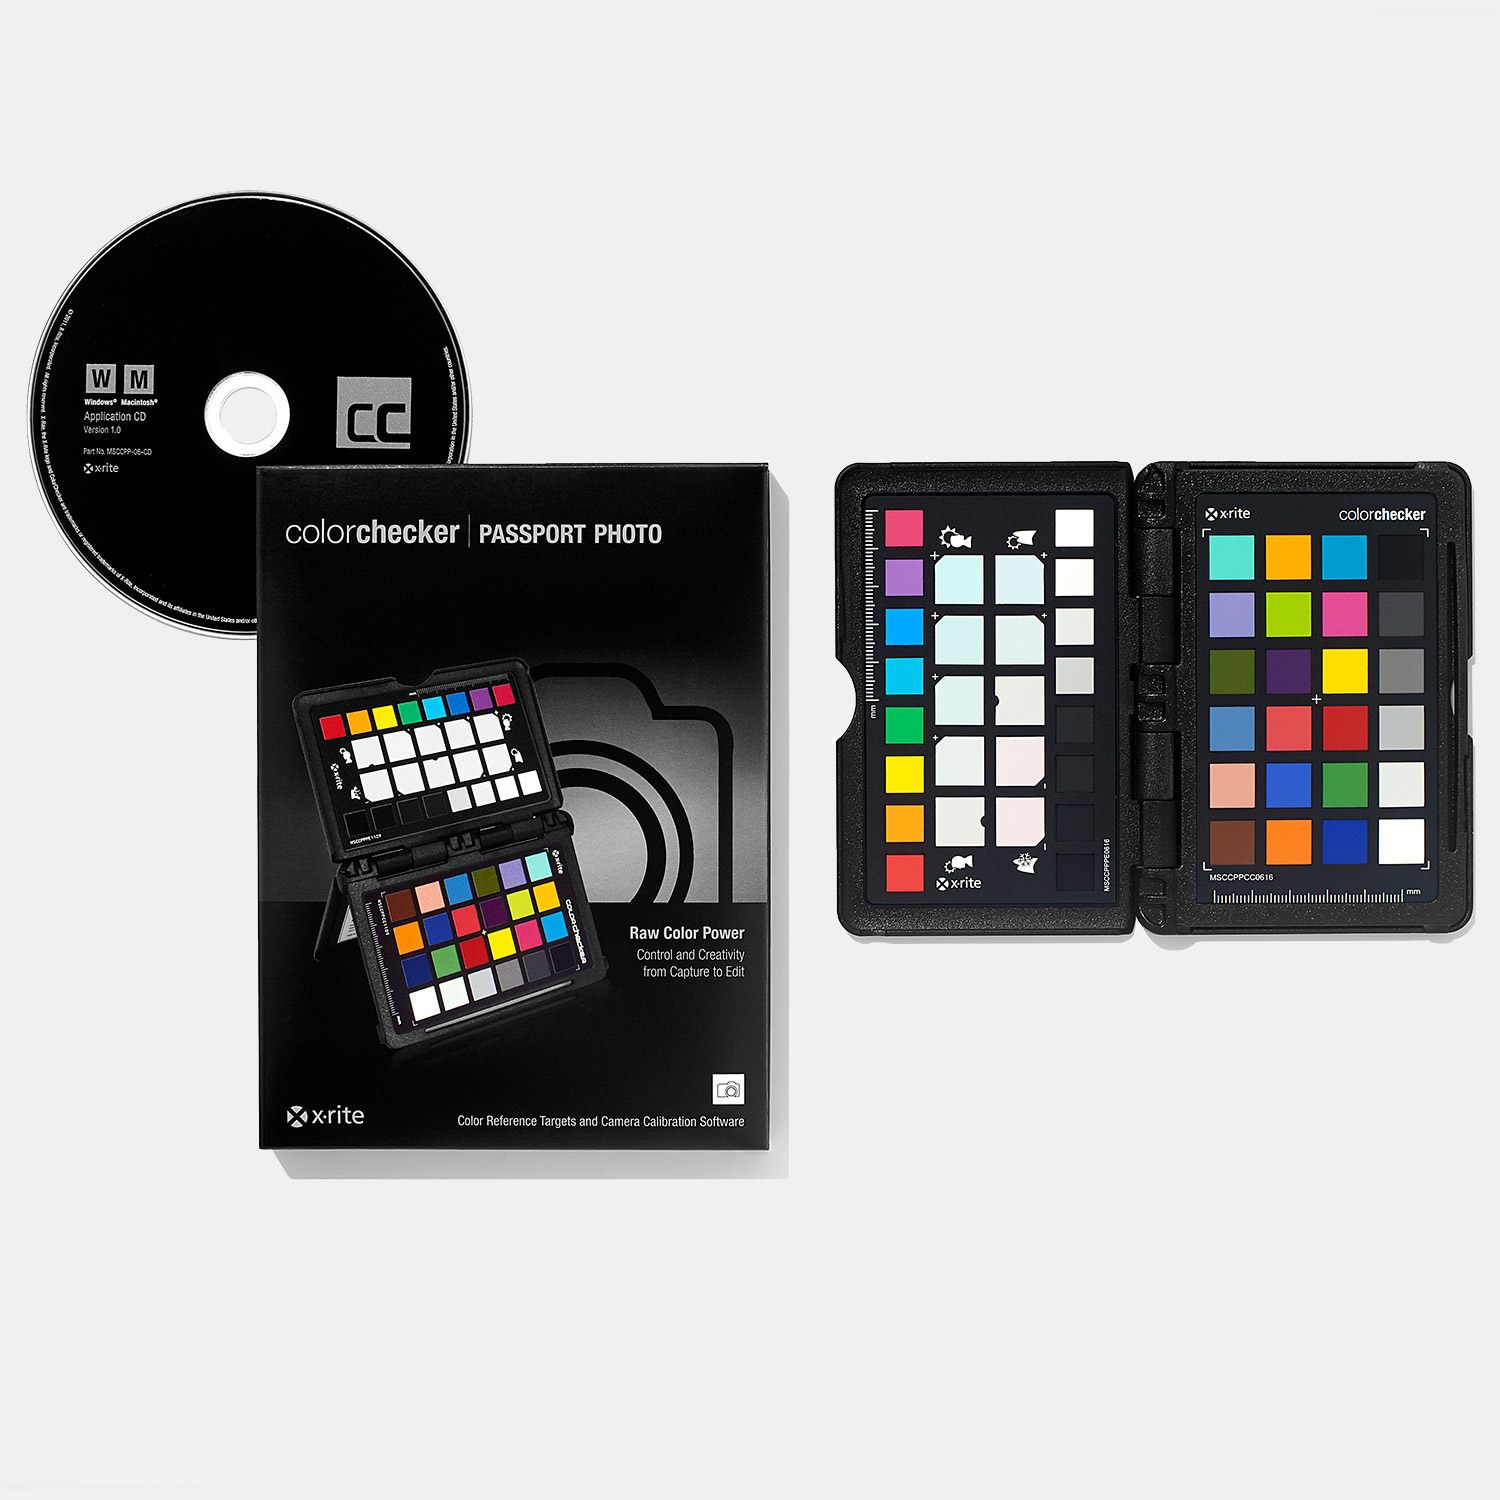 MSCCPP-pantone-x-rite-color-checker-passport-photographic-targets-product-1.jpg?x-oss-process=style/comp